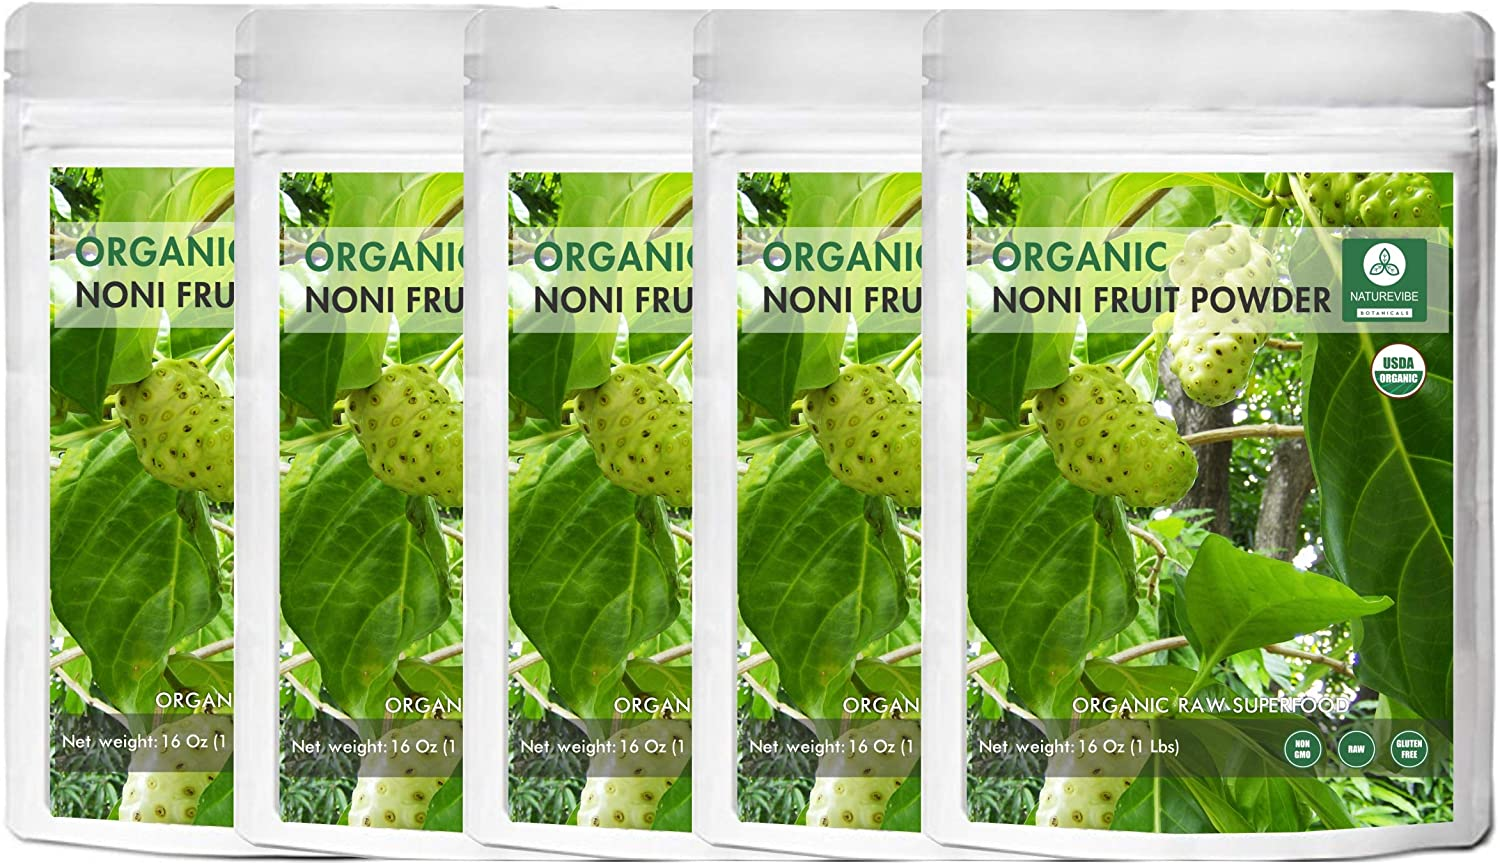 Naturevibe Botanicals USDA Organic Noni Fruit Powder, 5lbs 5 Packs of 16oz Each – Morinda Citrifolia – 100 Pure Natural – Gluten Free Non-GMO